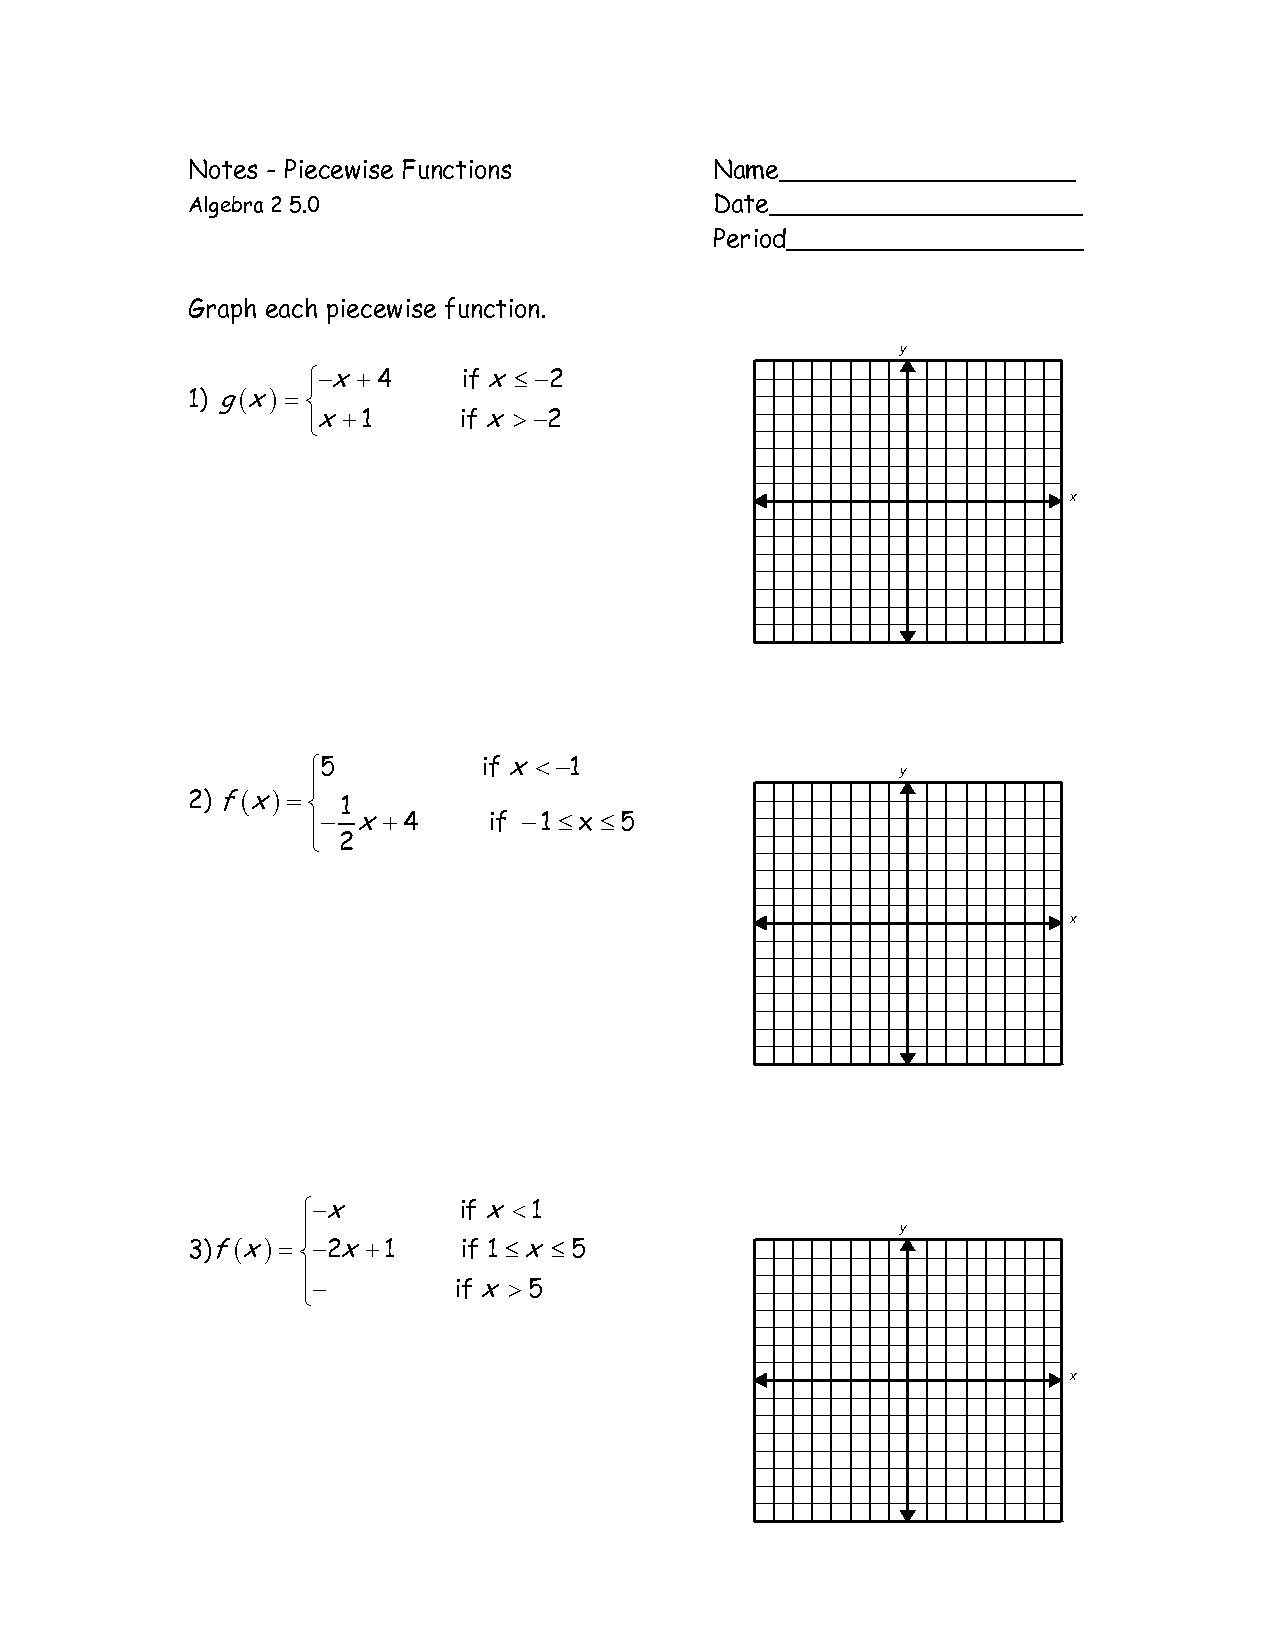 Graphing Piecewise Functions Worksheet Algebra 1